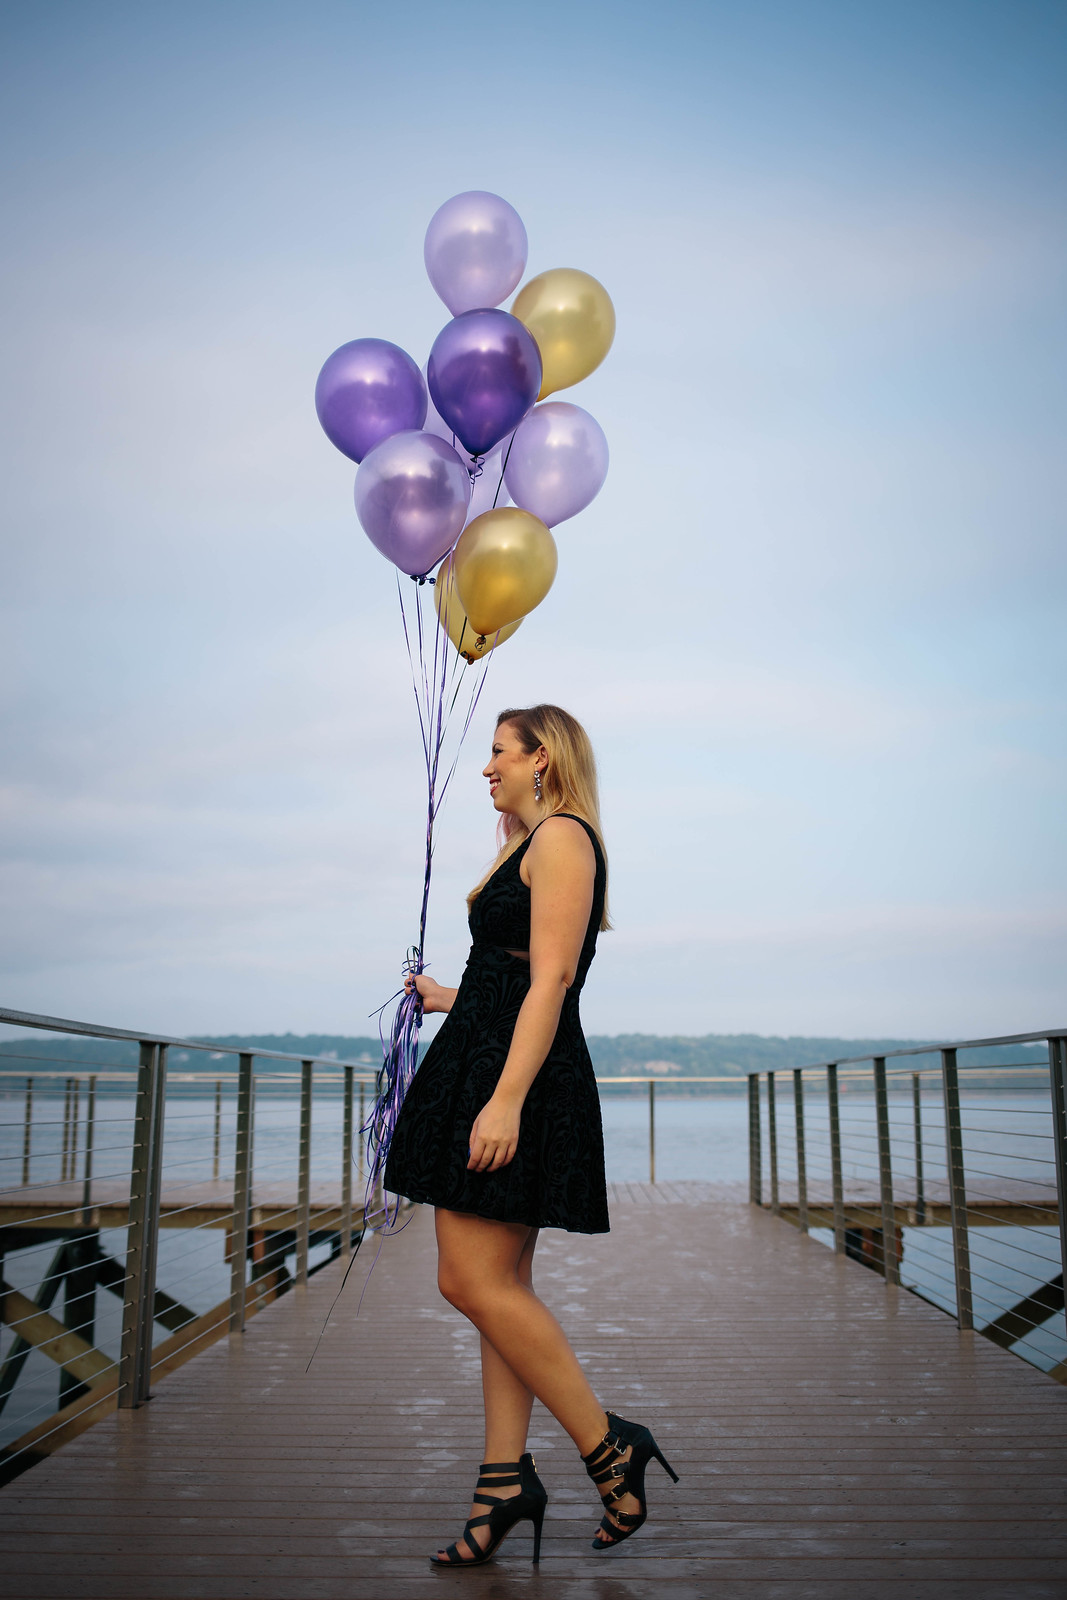 Jackie Giardina 30th Birthday Photoshoot Living After Midnite Balloons Twirling Dress